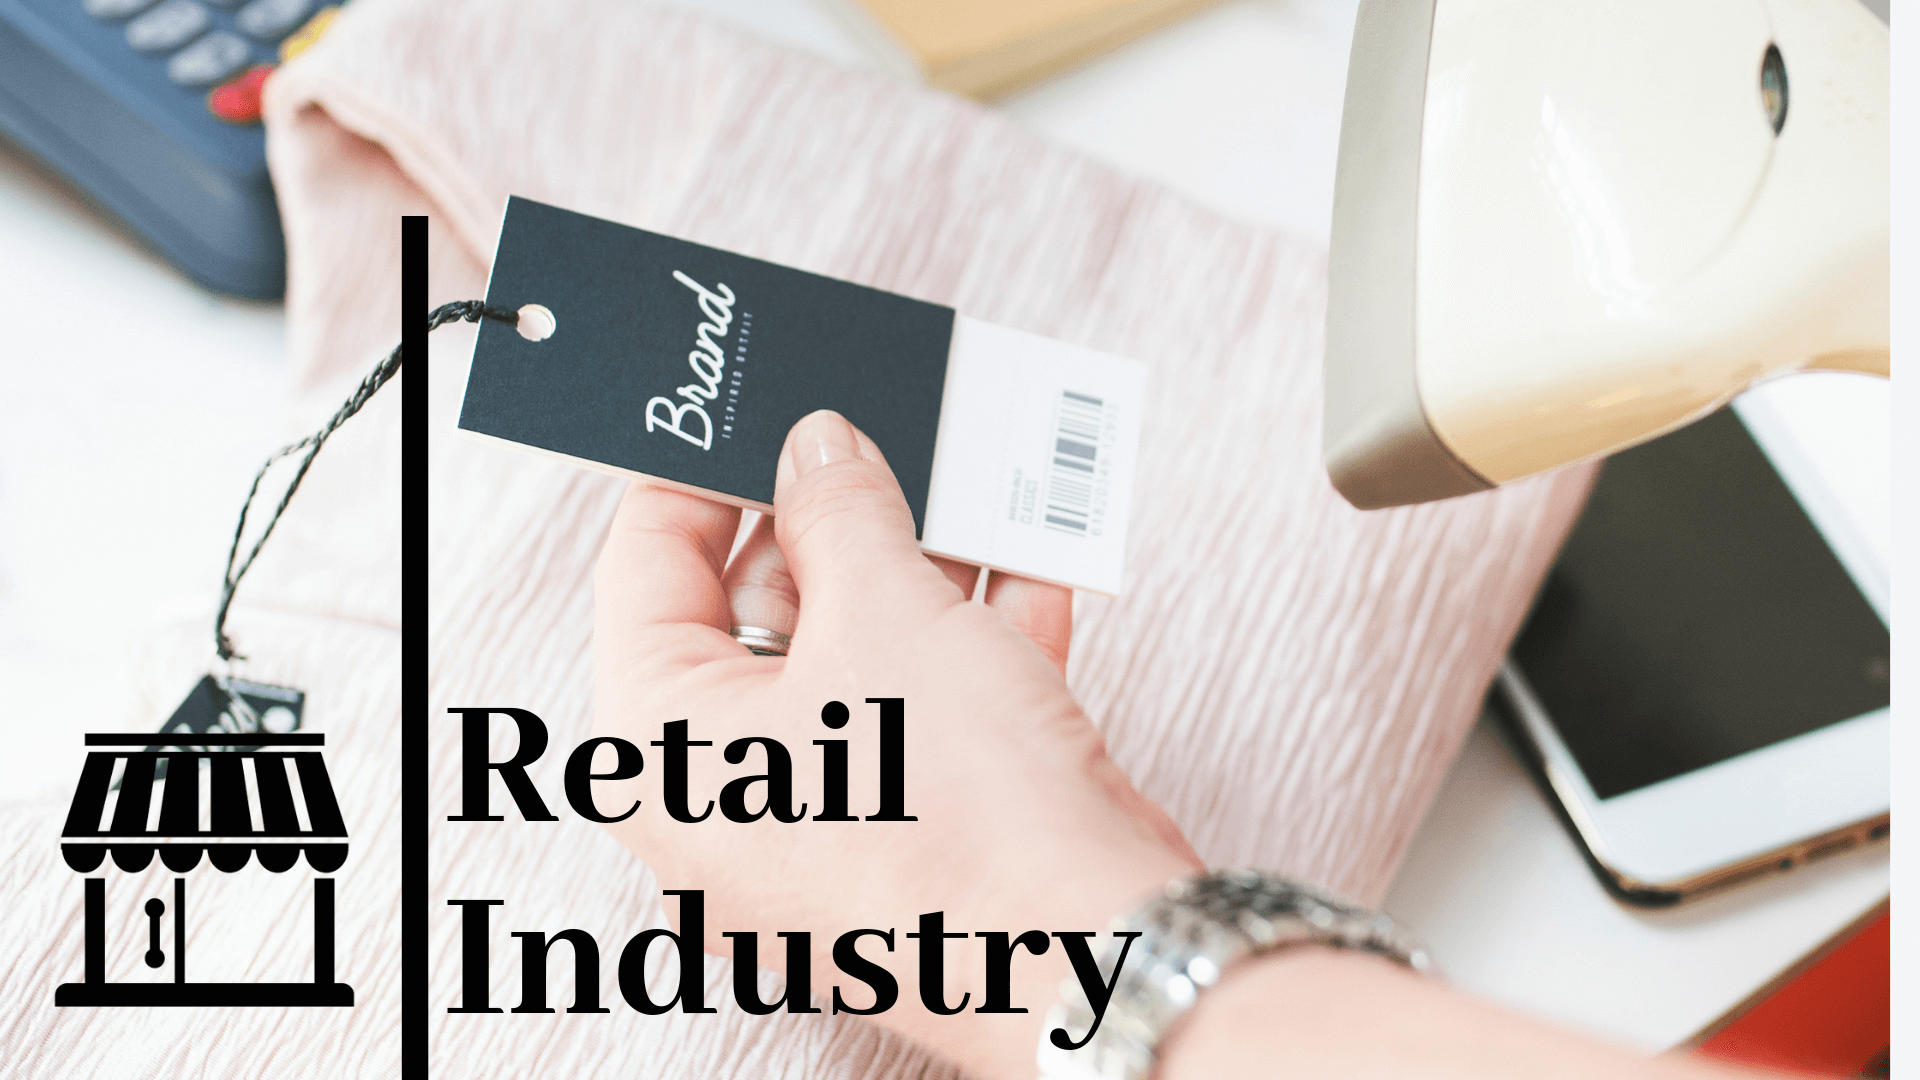 Retail industry TRooTech Business Solutions